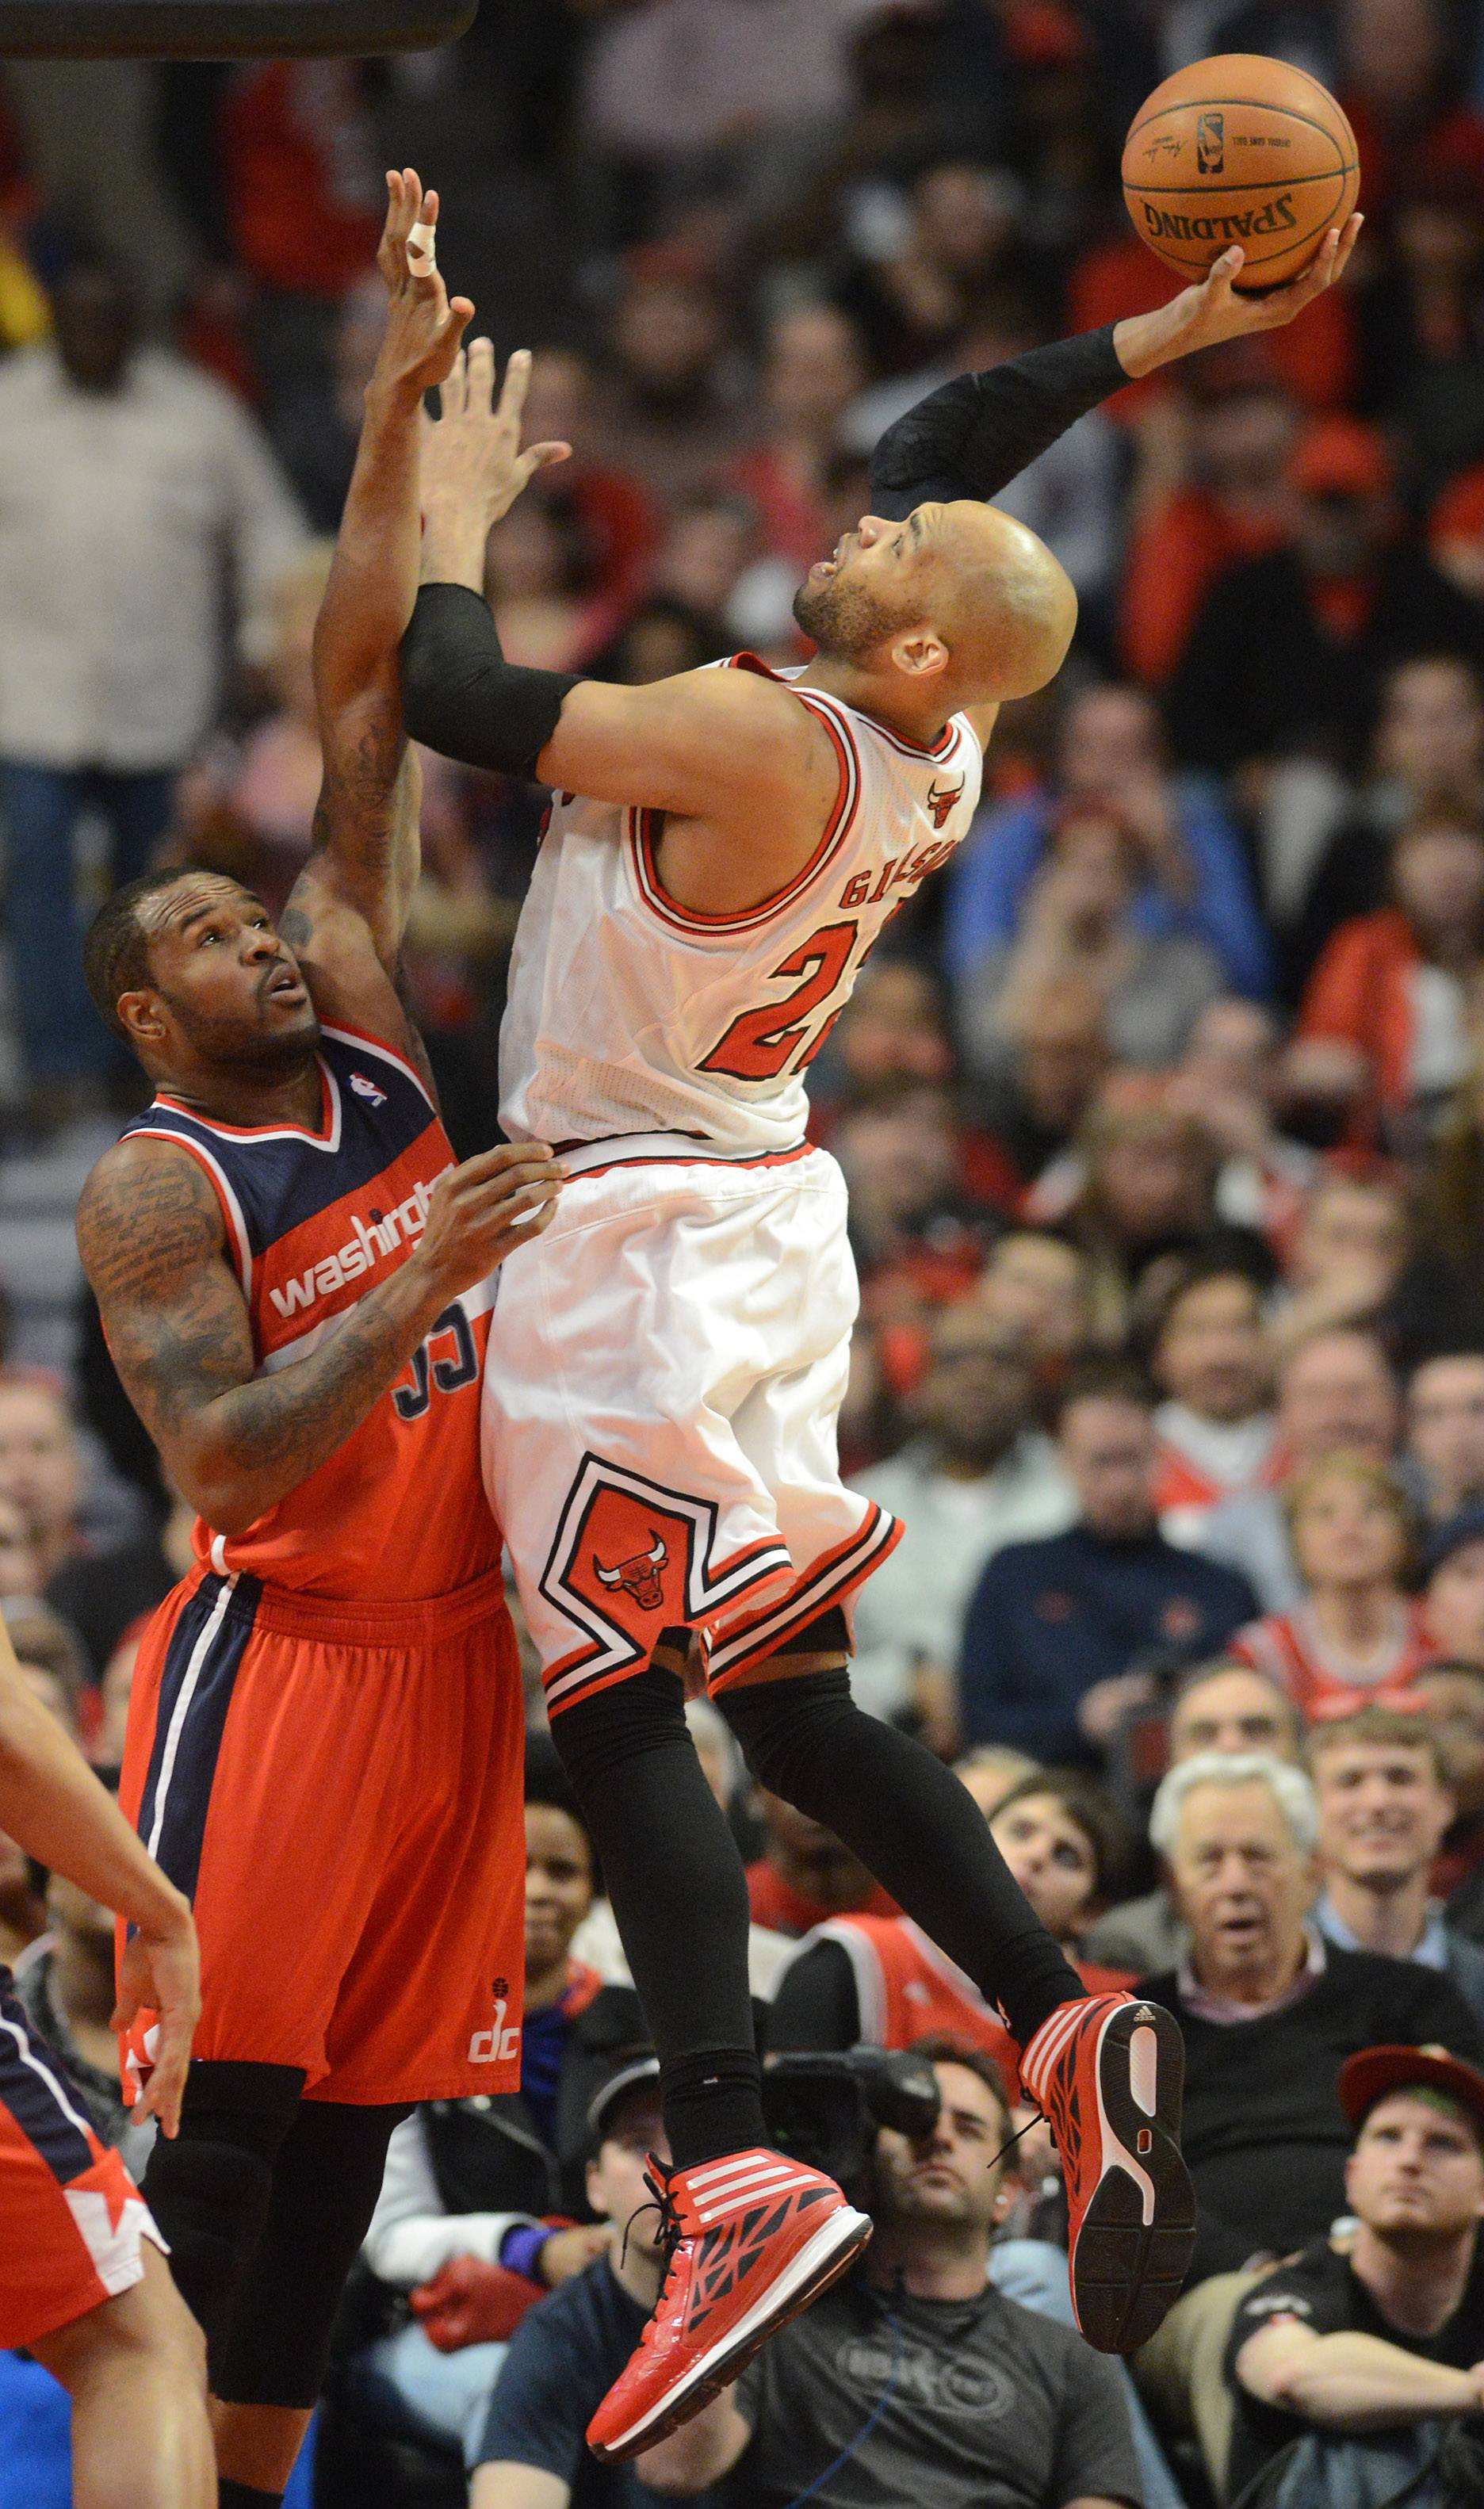 Chicago Bulls forward Taj Gibson (22) gets up a shot over Washington Wizards forward Trevor Booker (35).